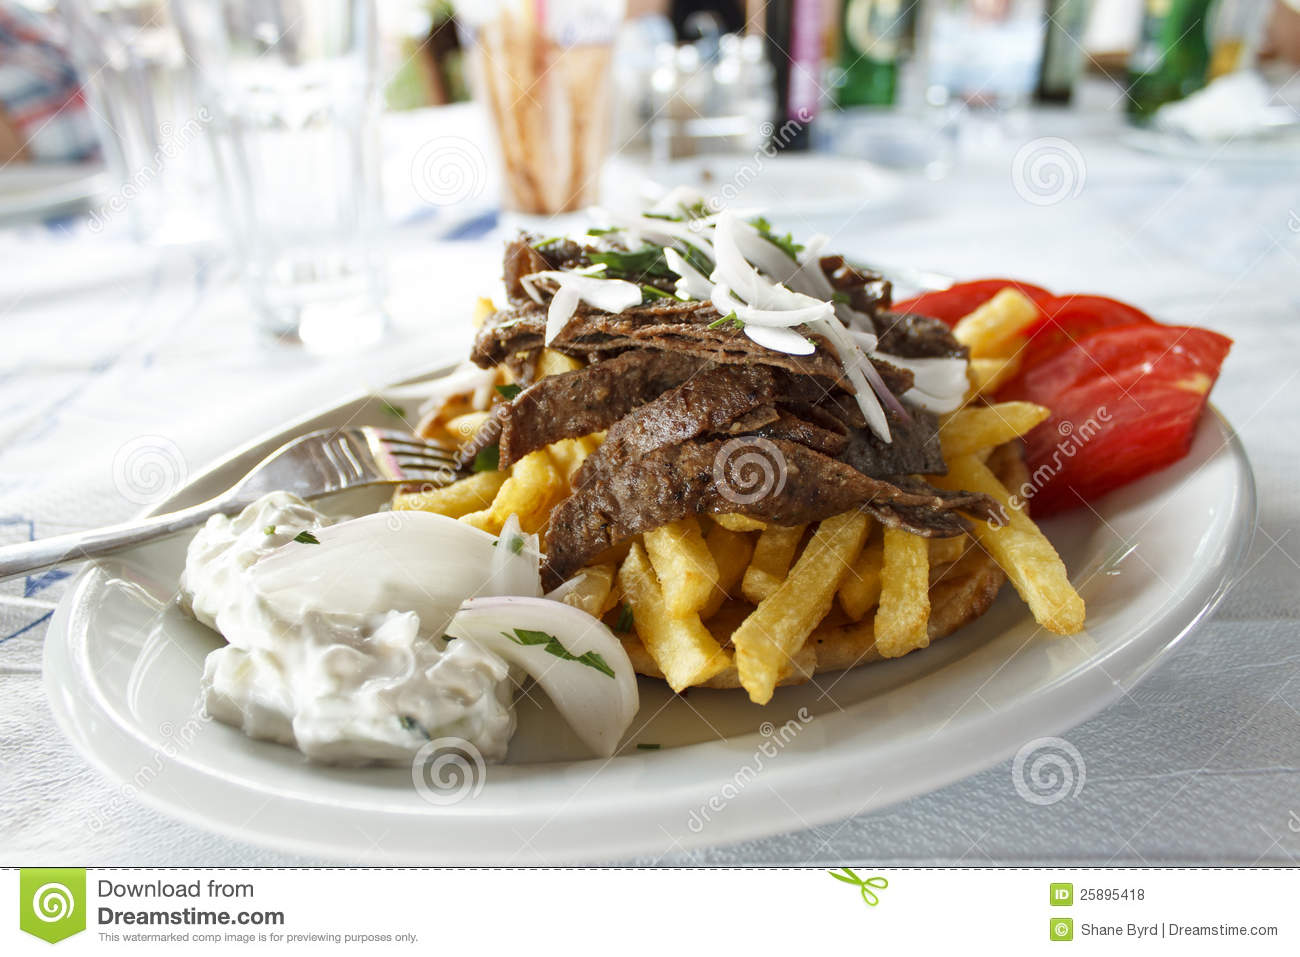 Delectable Gyro With Pork Plate Garnished With Onions And Other